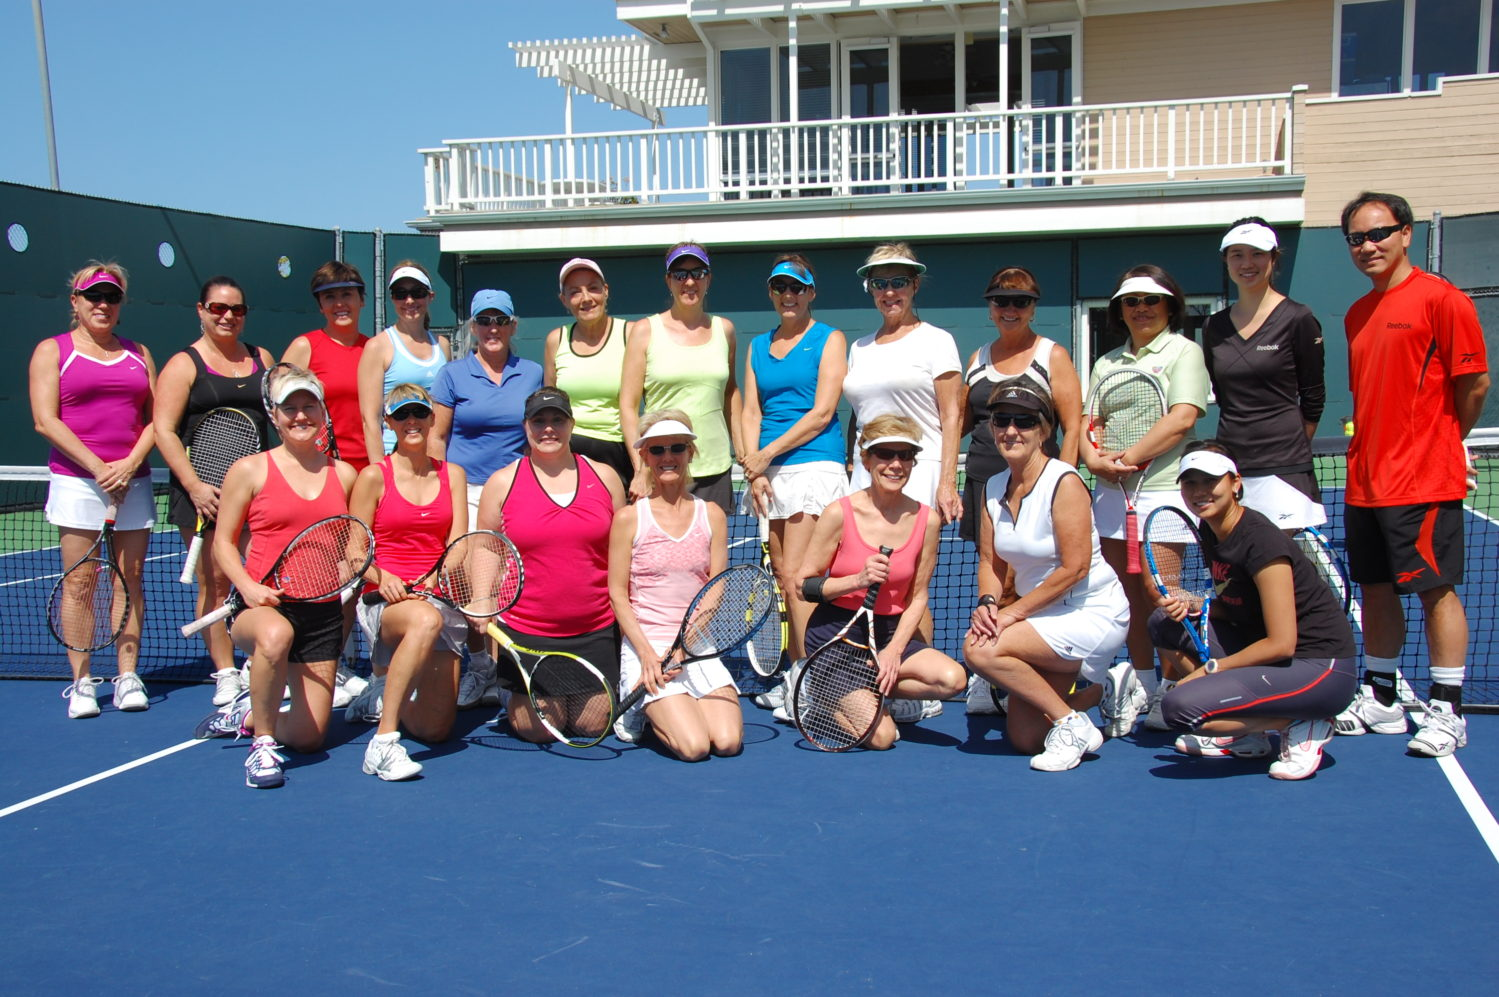 Dana Hills Tennis Center LEDL Cheng 2 e1518111997796